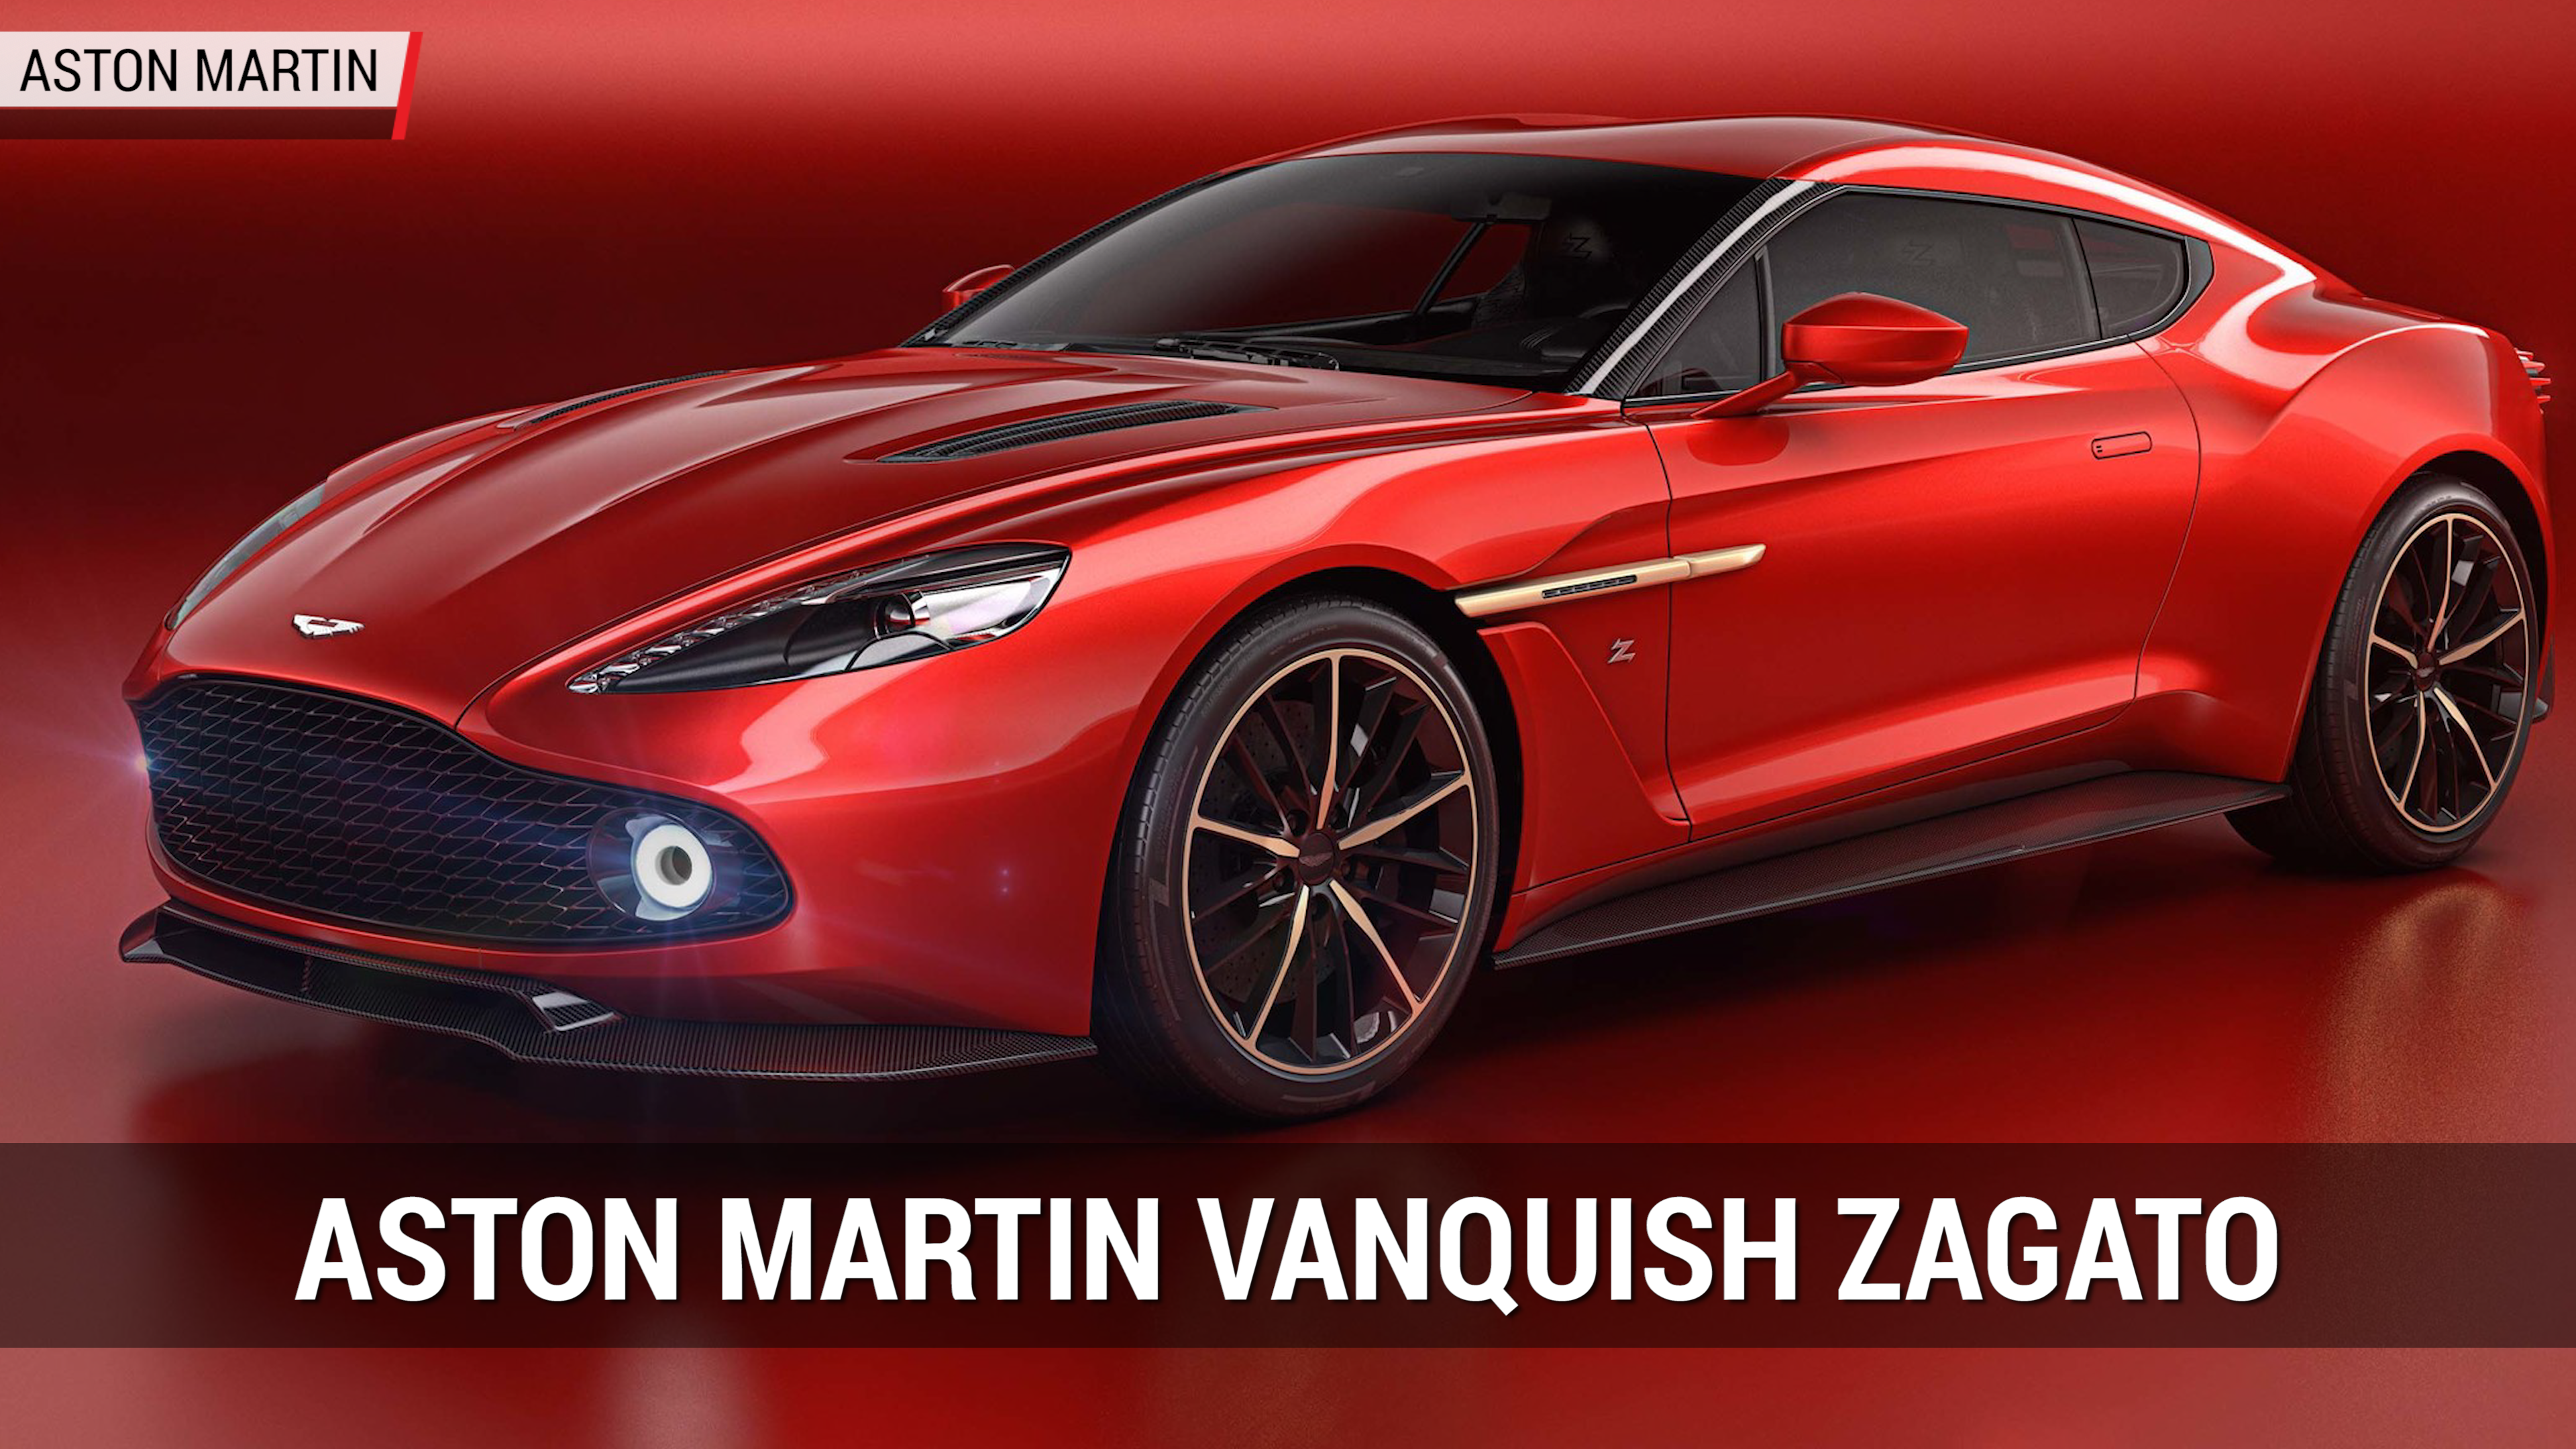 Aston Martin S Vanquish S Red Arrow Aerobatics Special Edition Is A